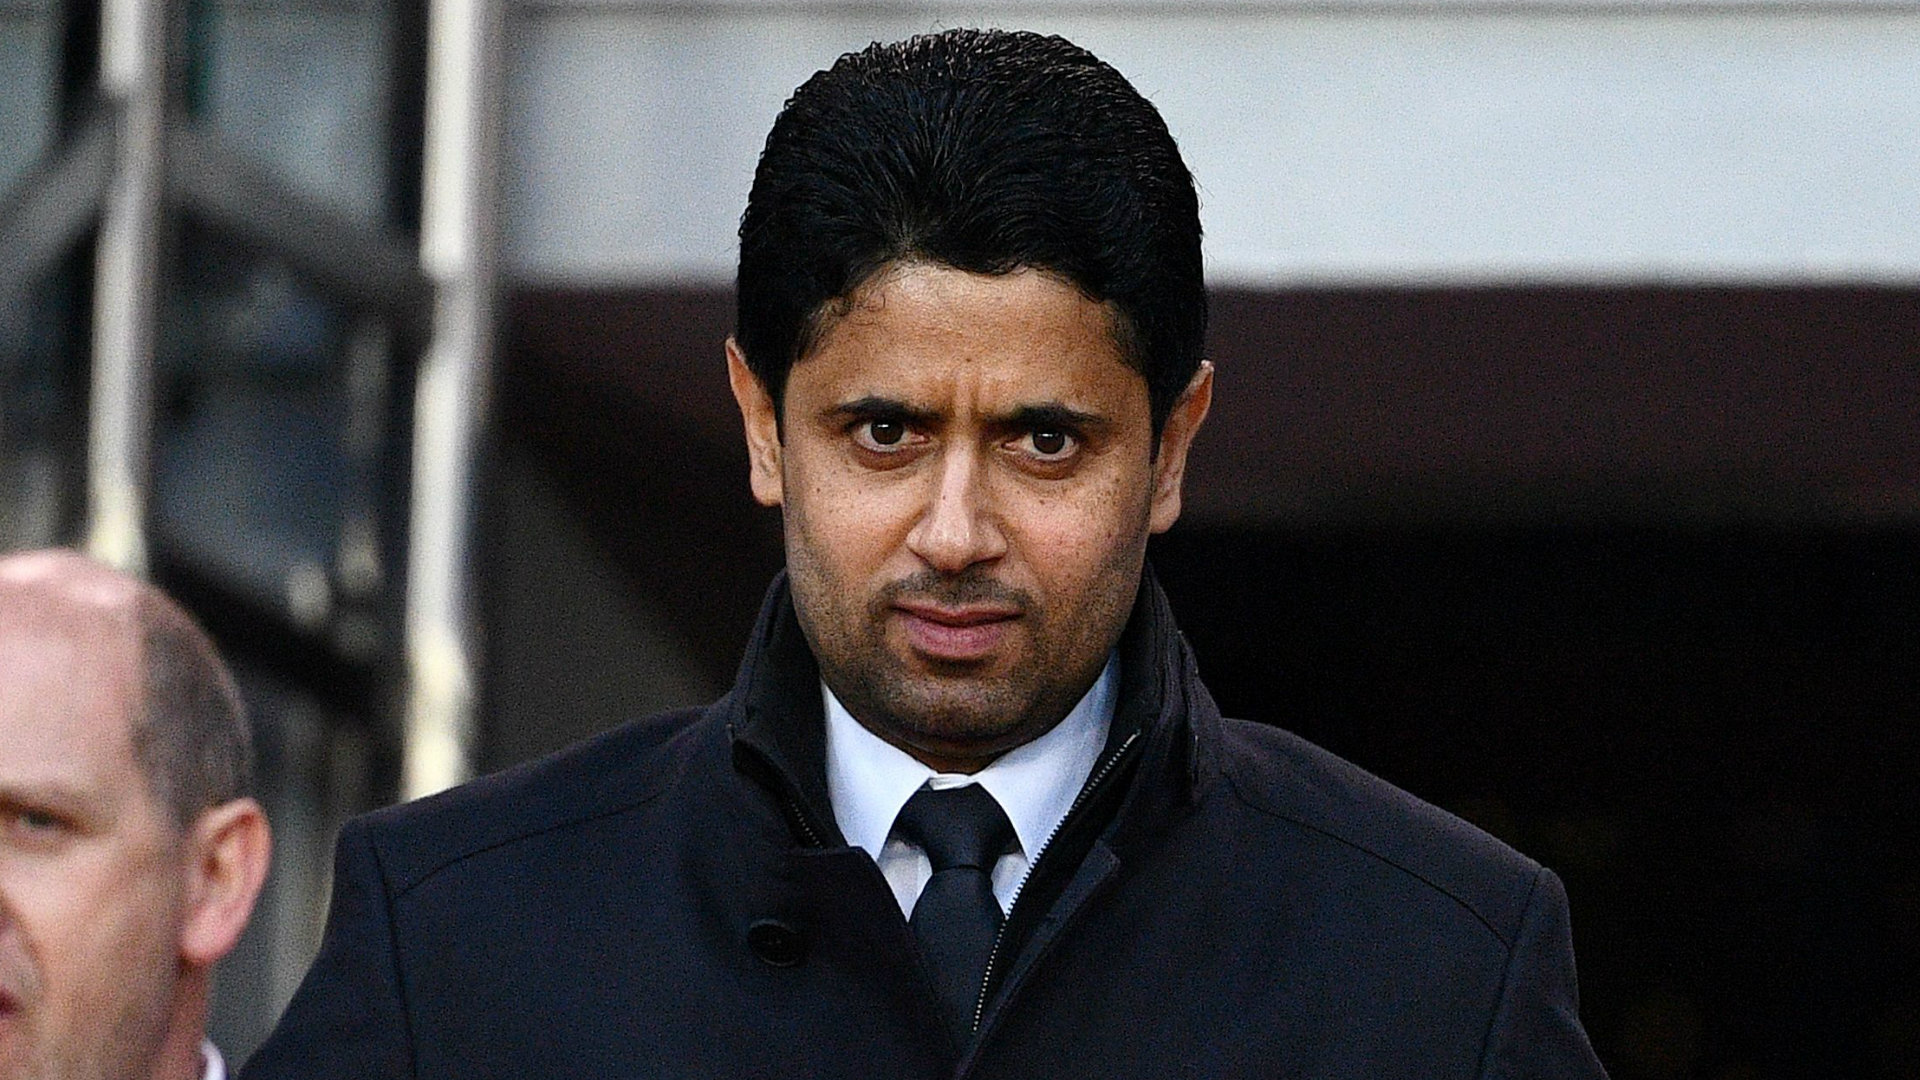 PSG president charged with criminal offences in Switzerland